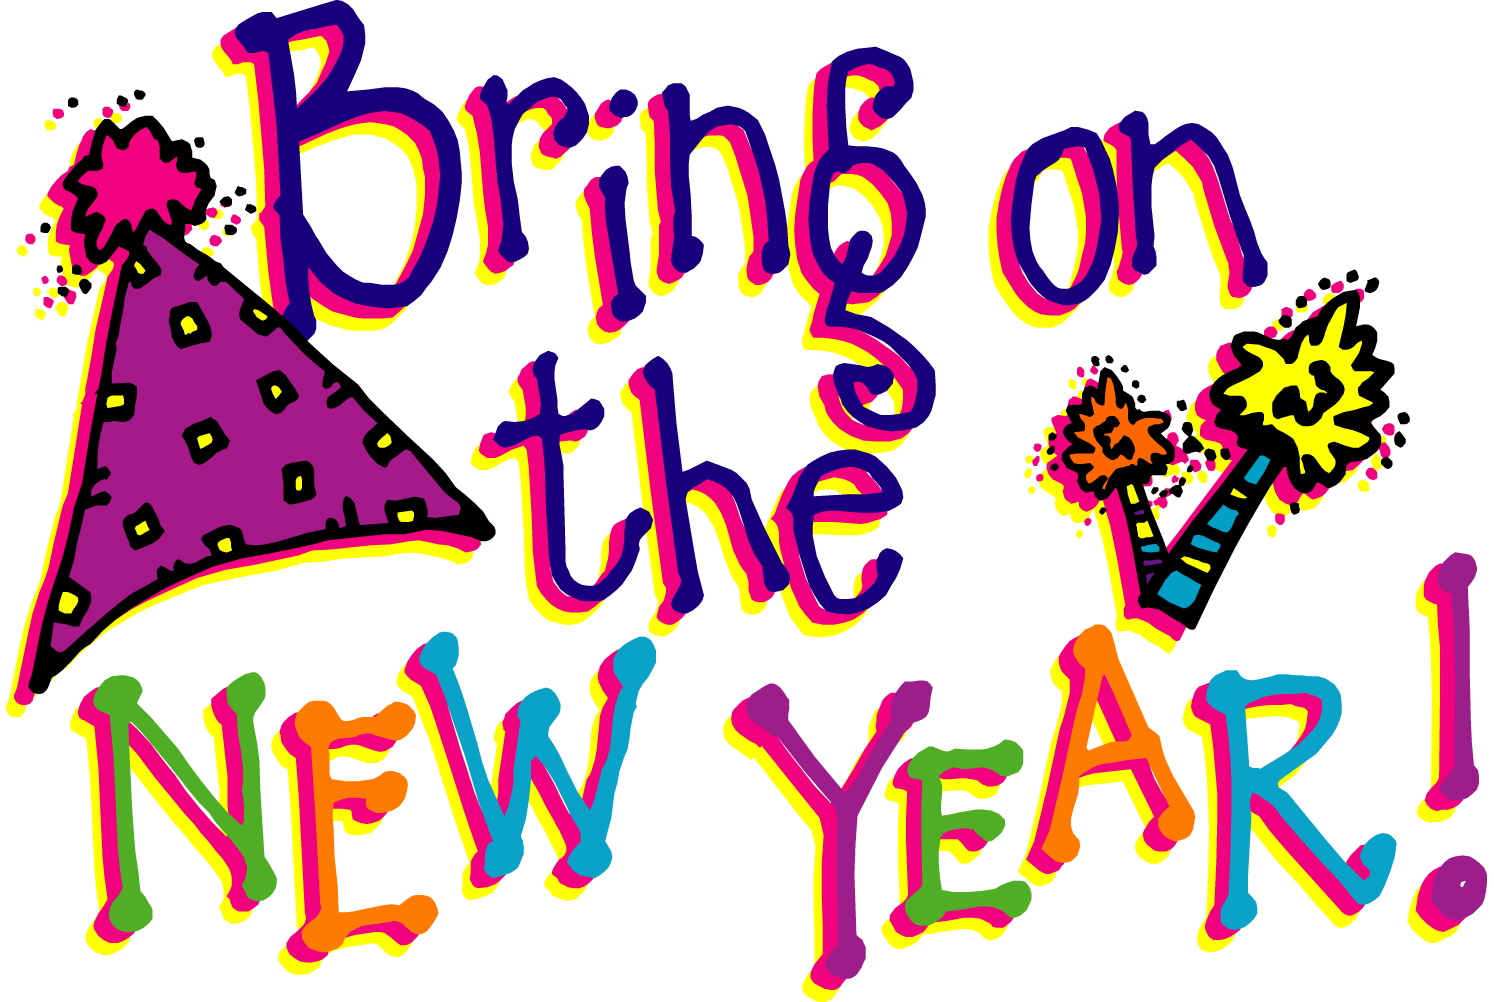 Happy New Year Clipart - .-Happy New Year Clipart - .-9